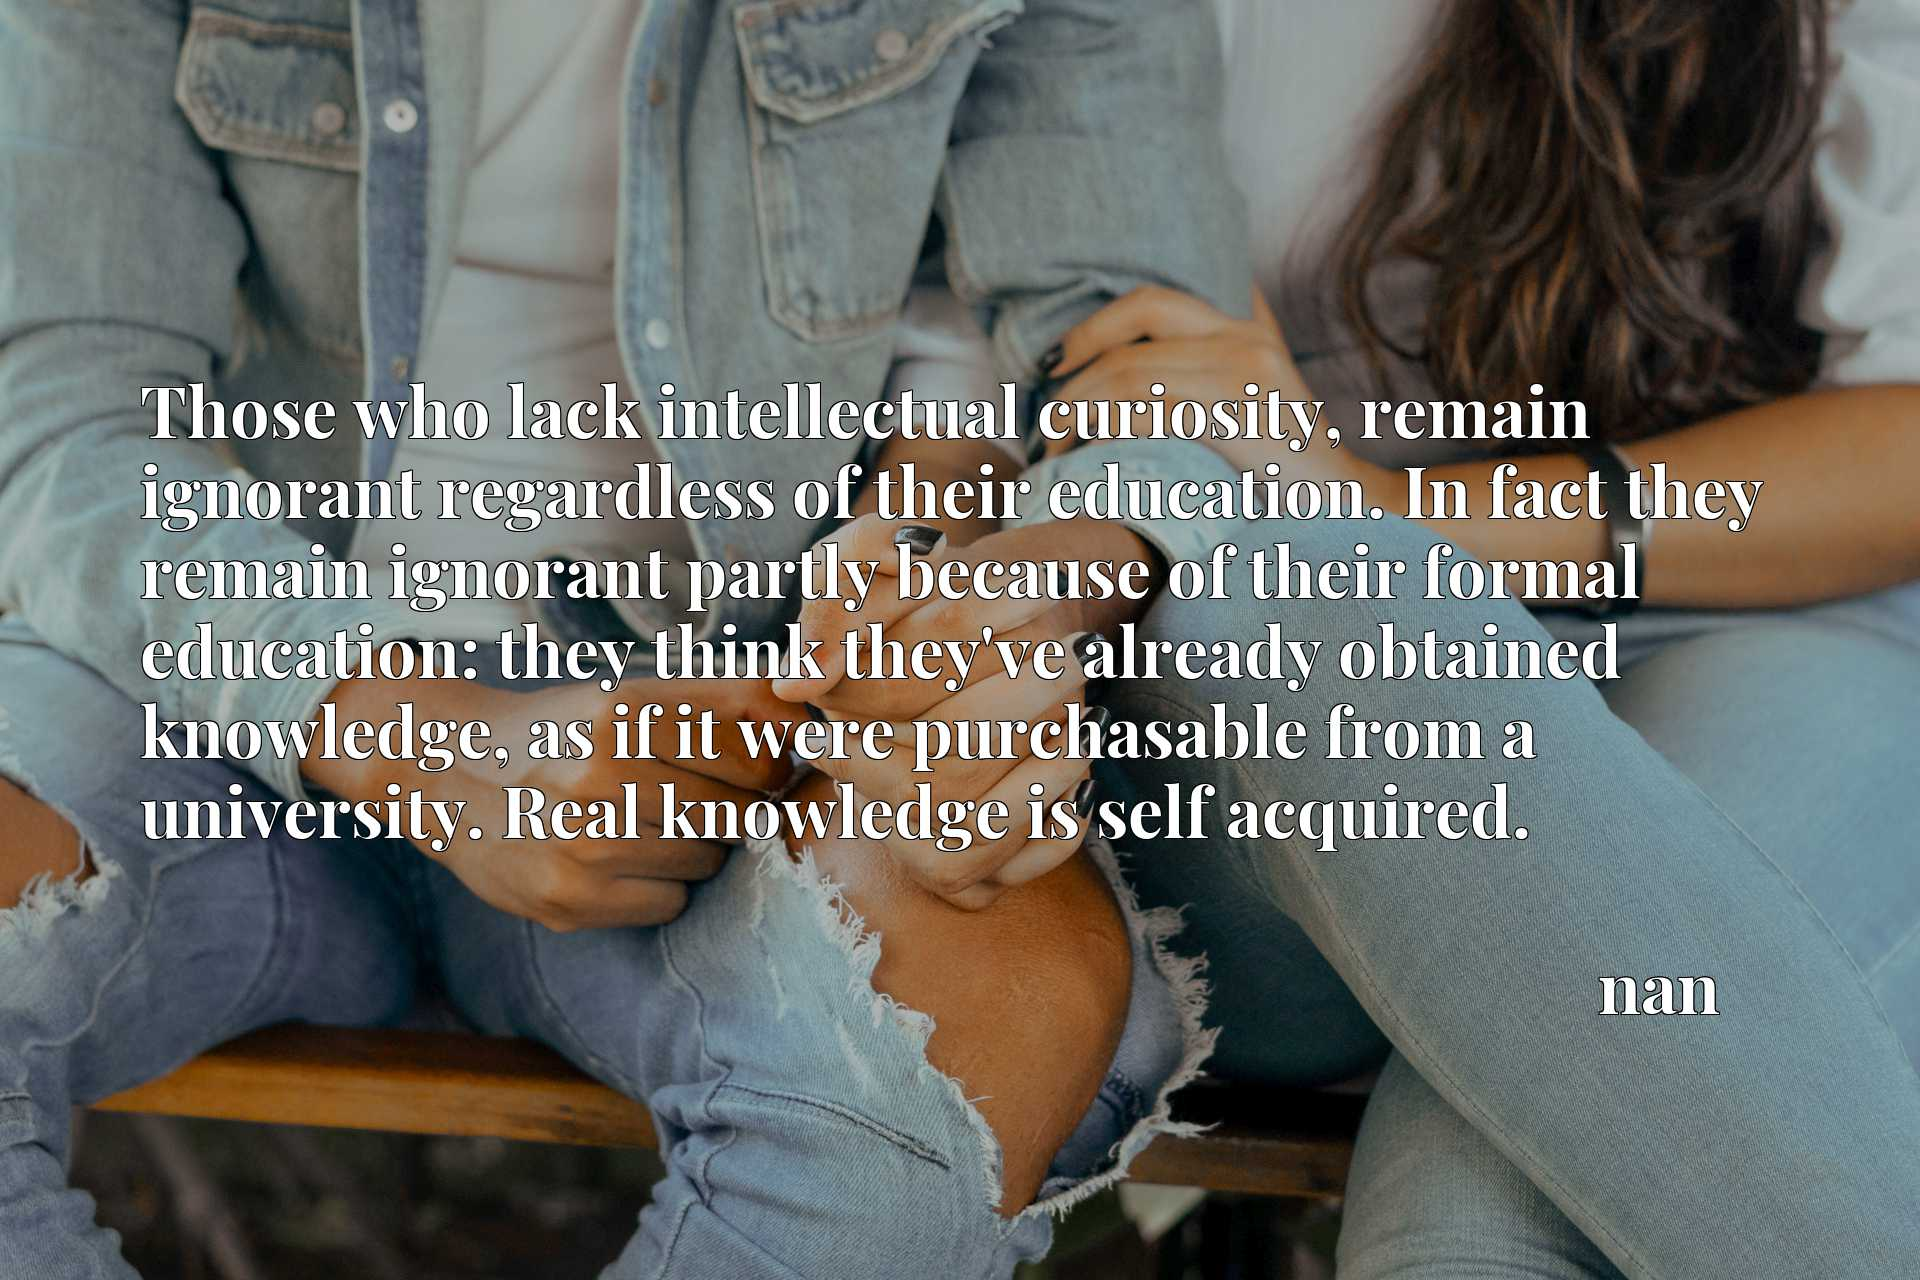 Those who lack intellectual curiosity, remain ignorant regardless of their education. In fact they remain ignorant partly because of their formal education: they think they've already obtained knowledge, as if it were purchasable from a university. Real knowledge is self acquired.